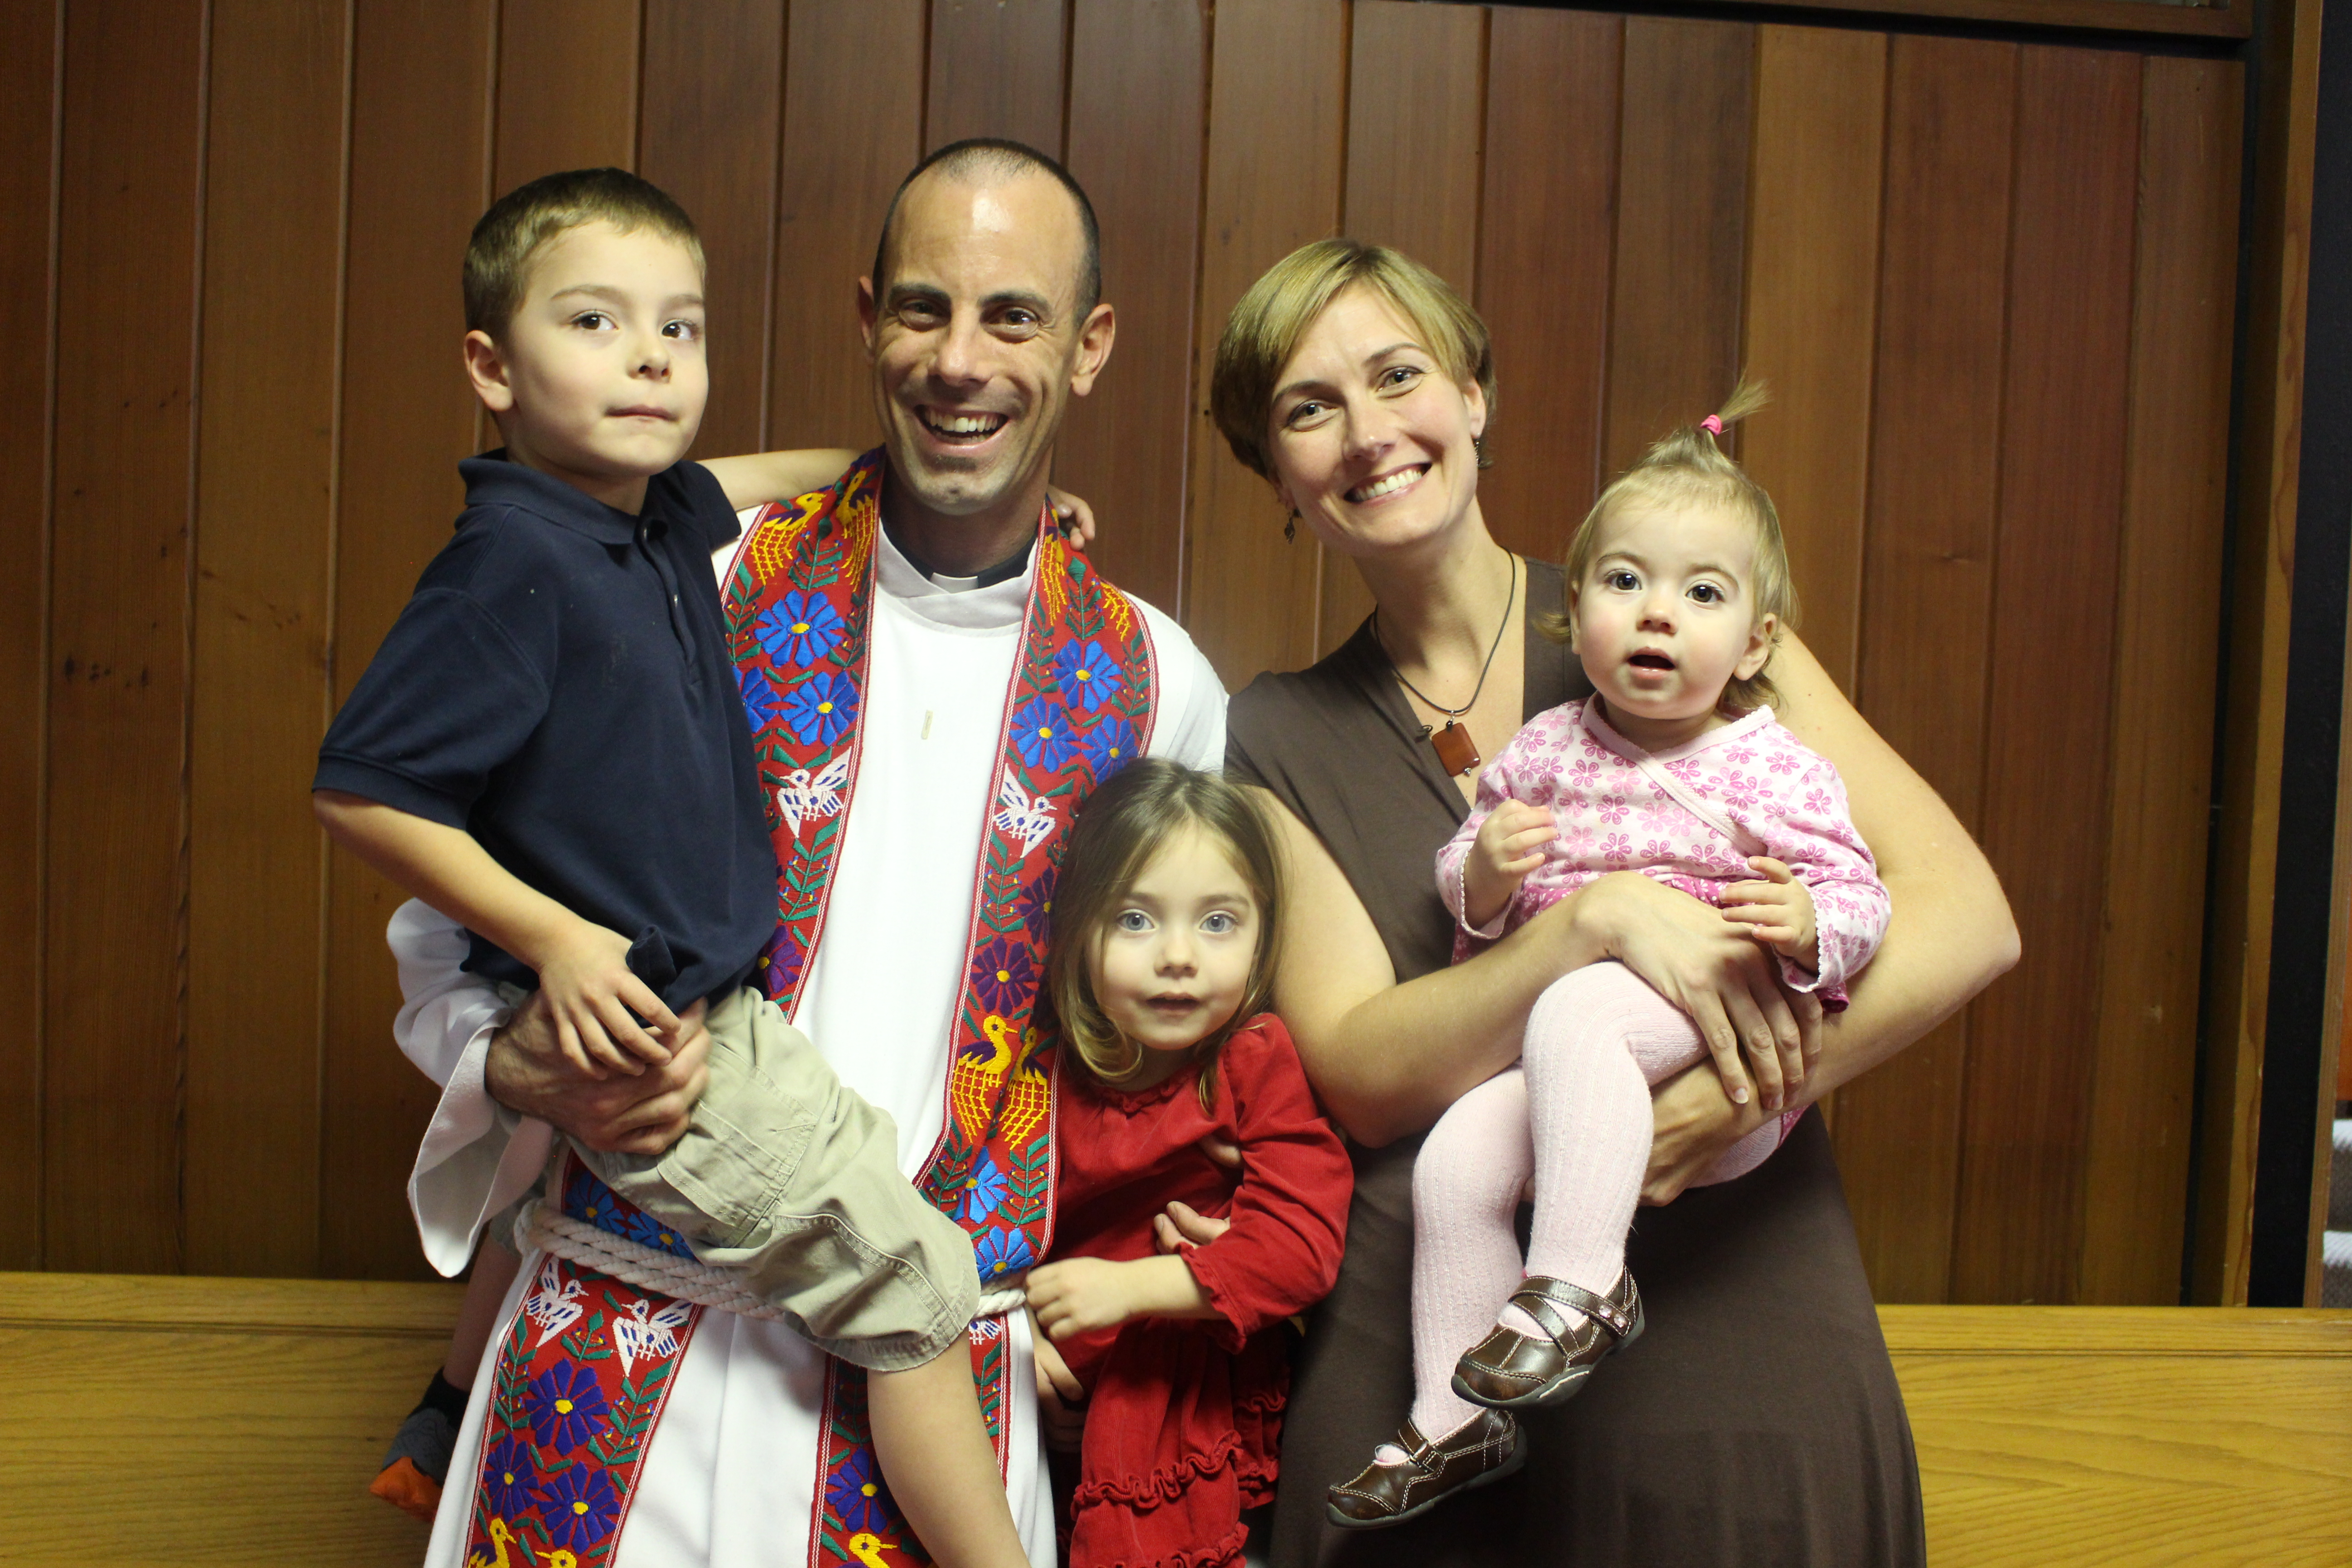 meet pastor brandon and his family salem lutheran ministries